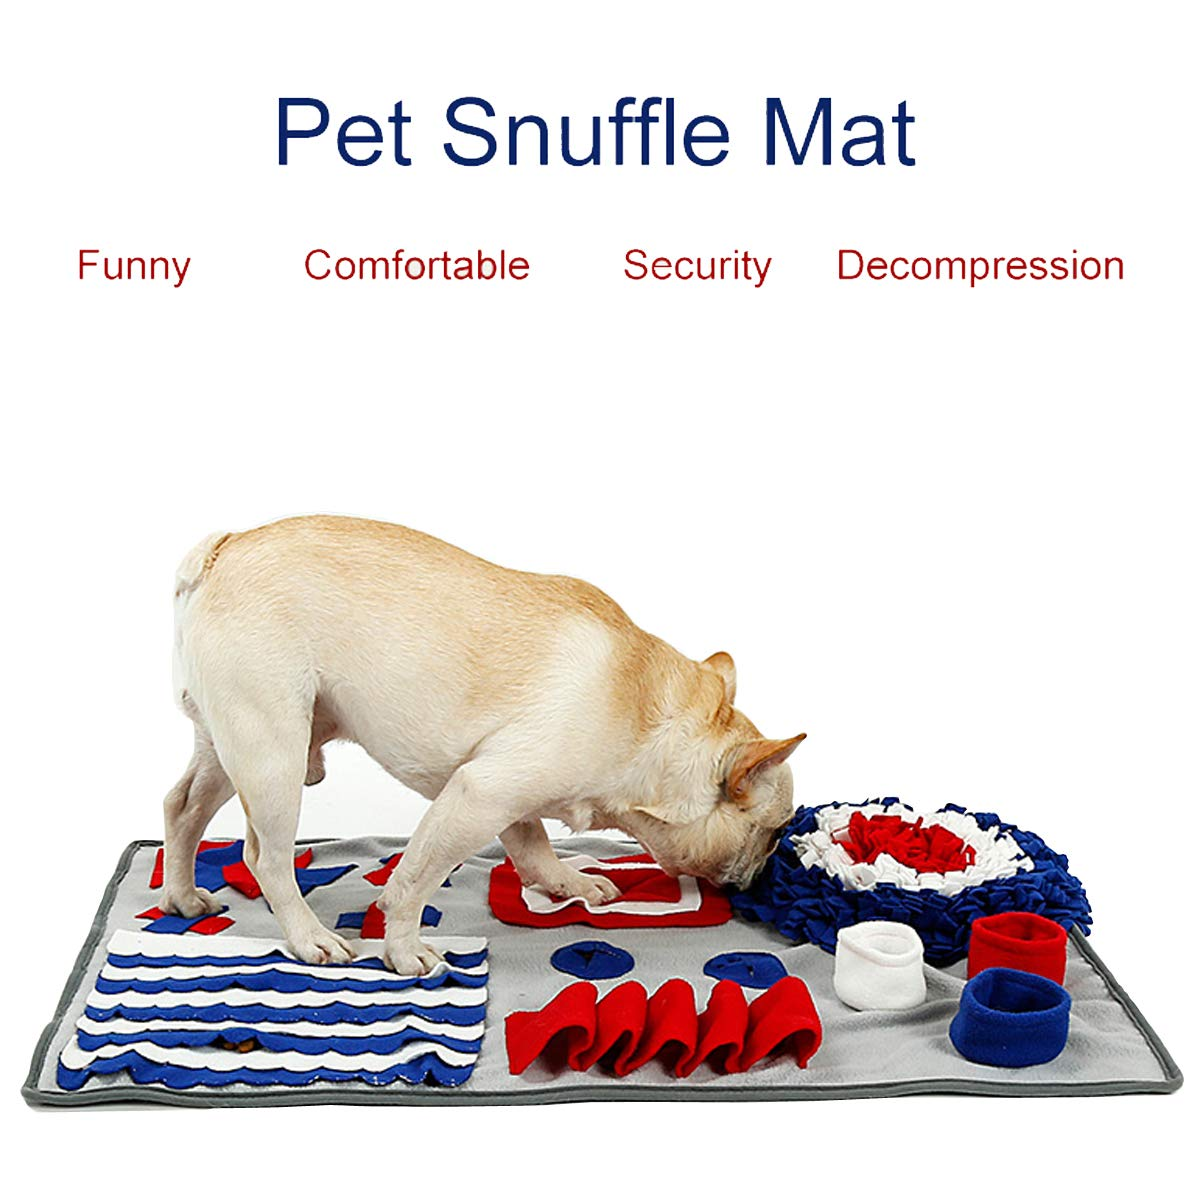 LYCXC Dog Snuffle Mat Feeding Mat Nosework Blanket Dog Training Mats Interactive Pet Toy Mat for Dogs Cat Stress Release(29.5'' x 19.6'') by LYCXC